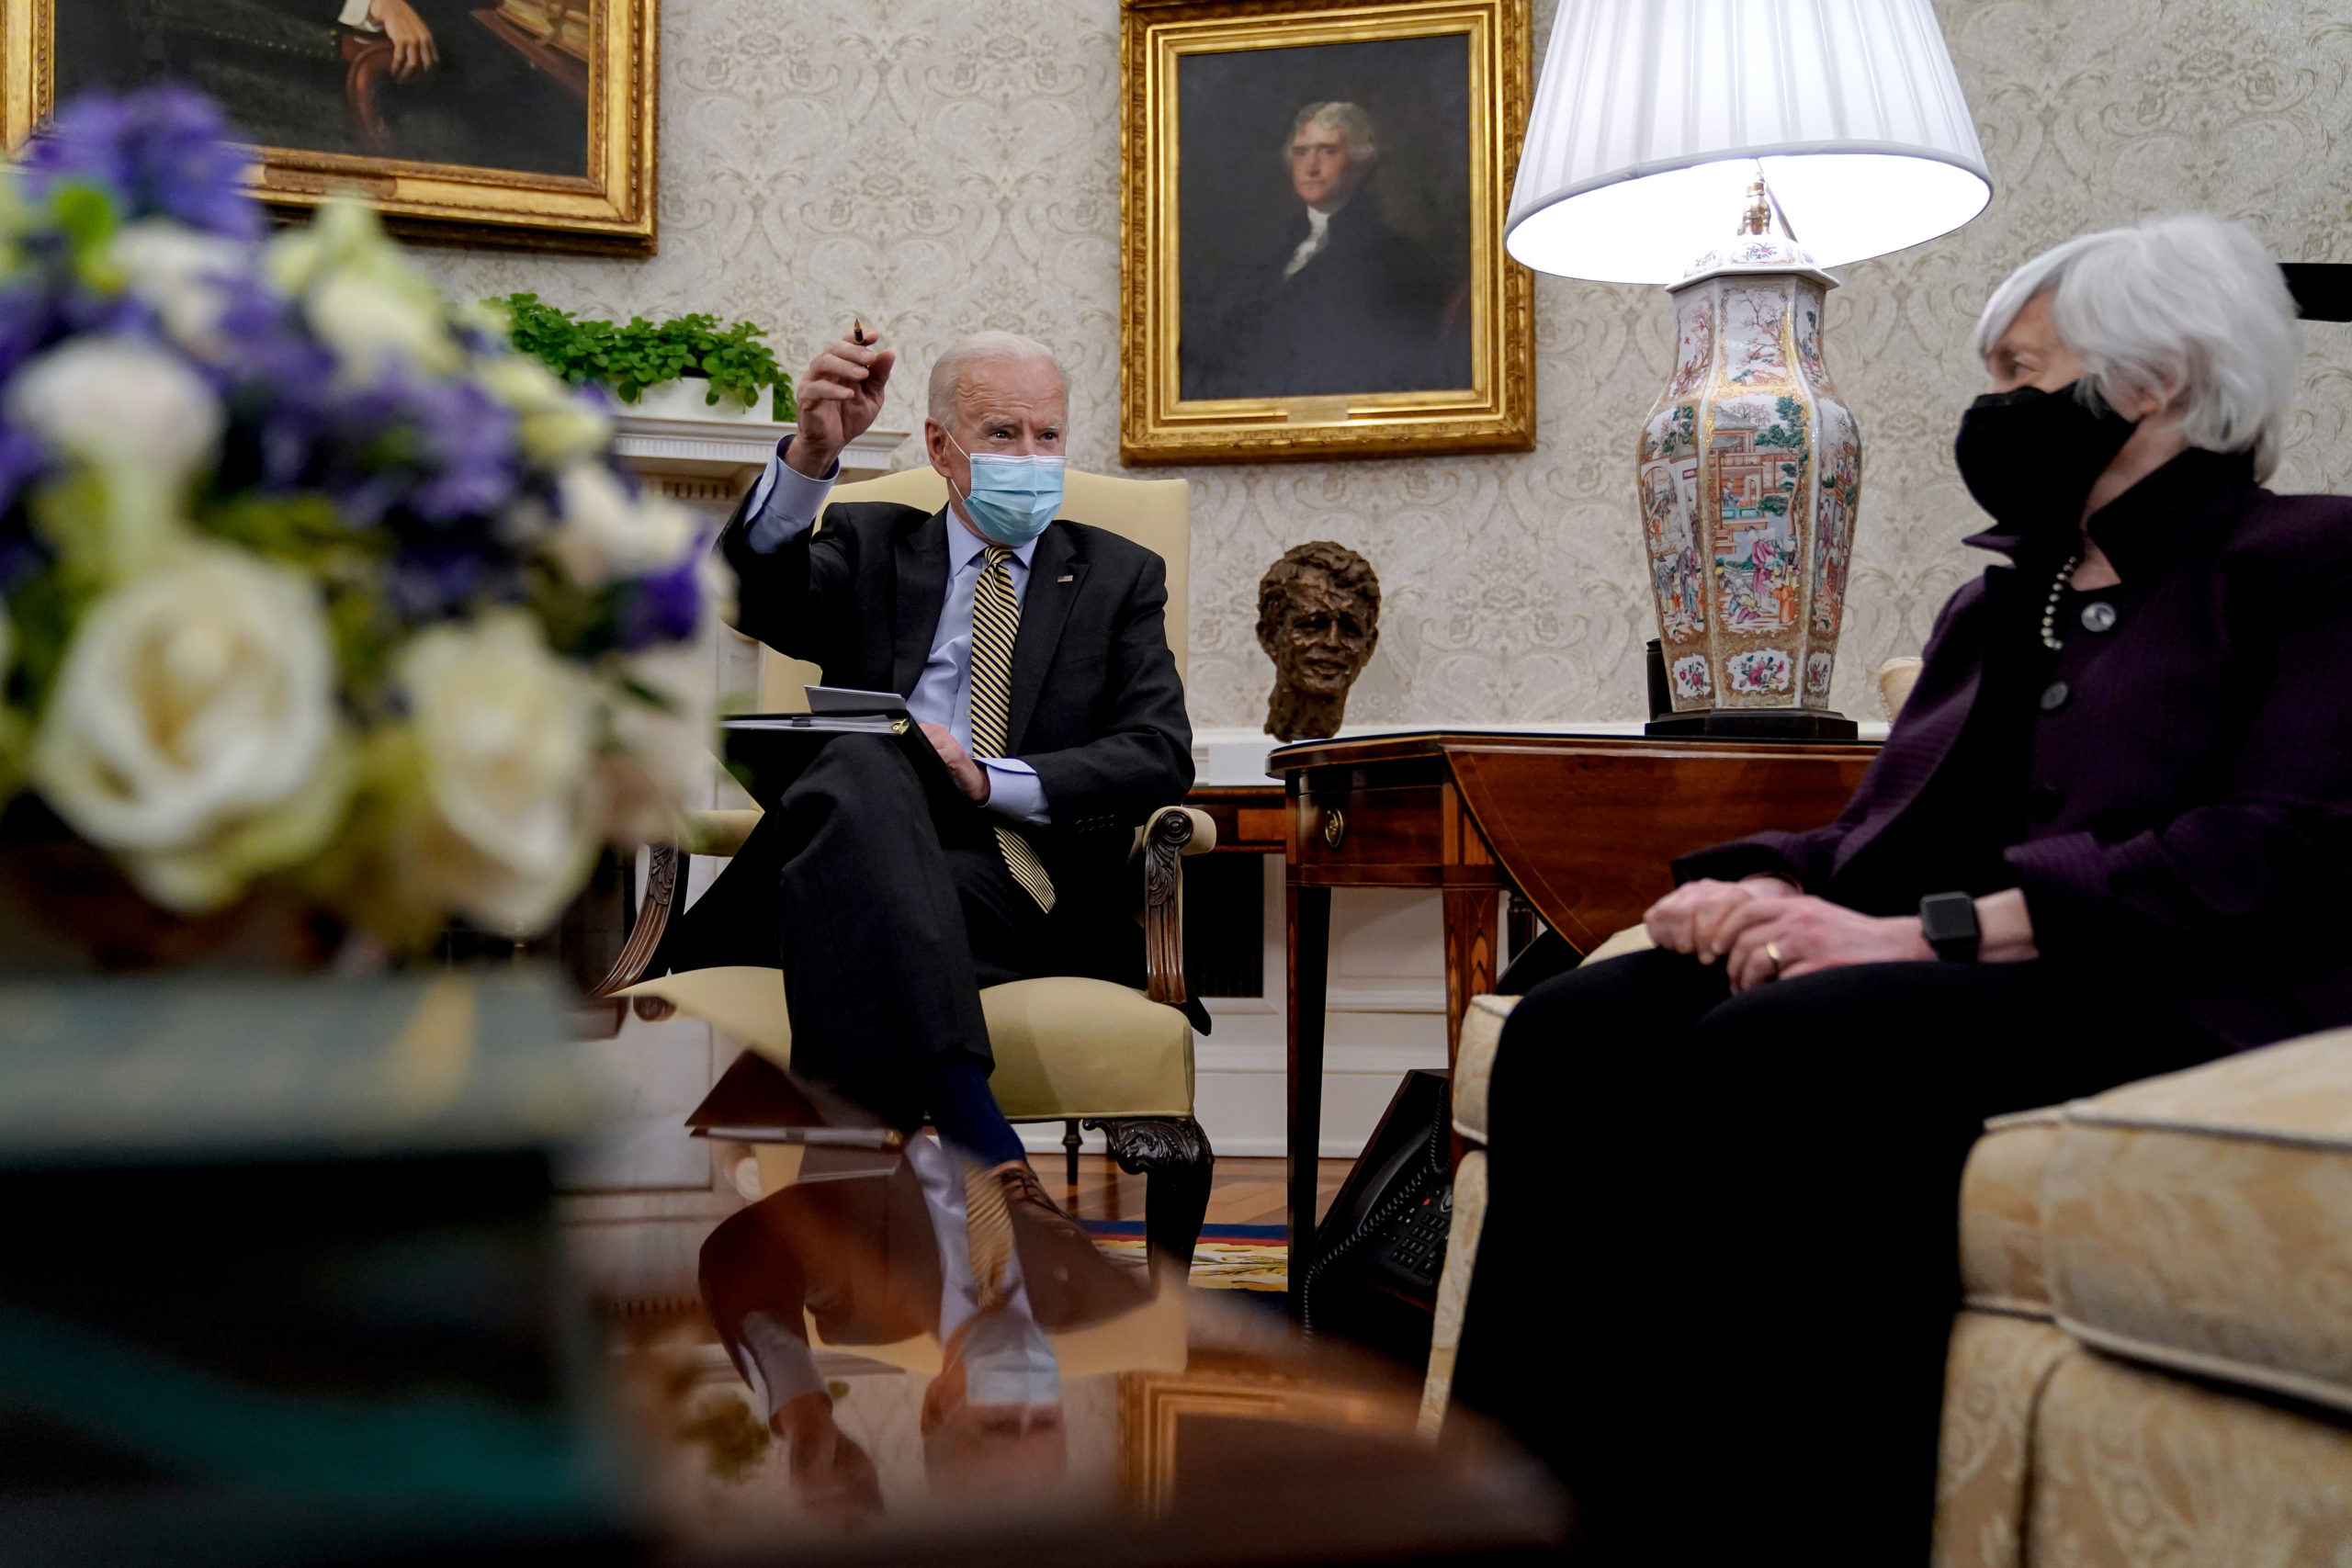 President Joe Biden speaks to Treasury Secretary Janet Yellen listens during the weekly economic briefing in the Oval Office on April 9. (Amr Alfiky/Pool/Getty Images)